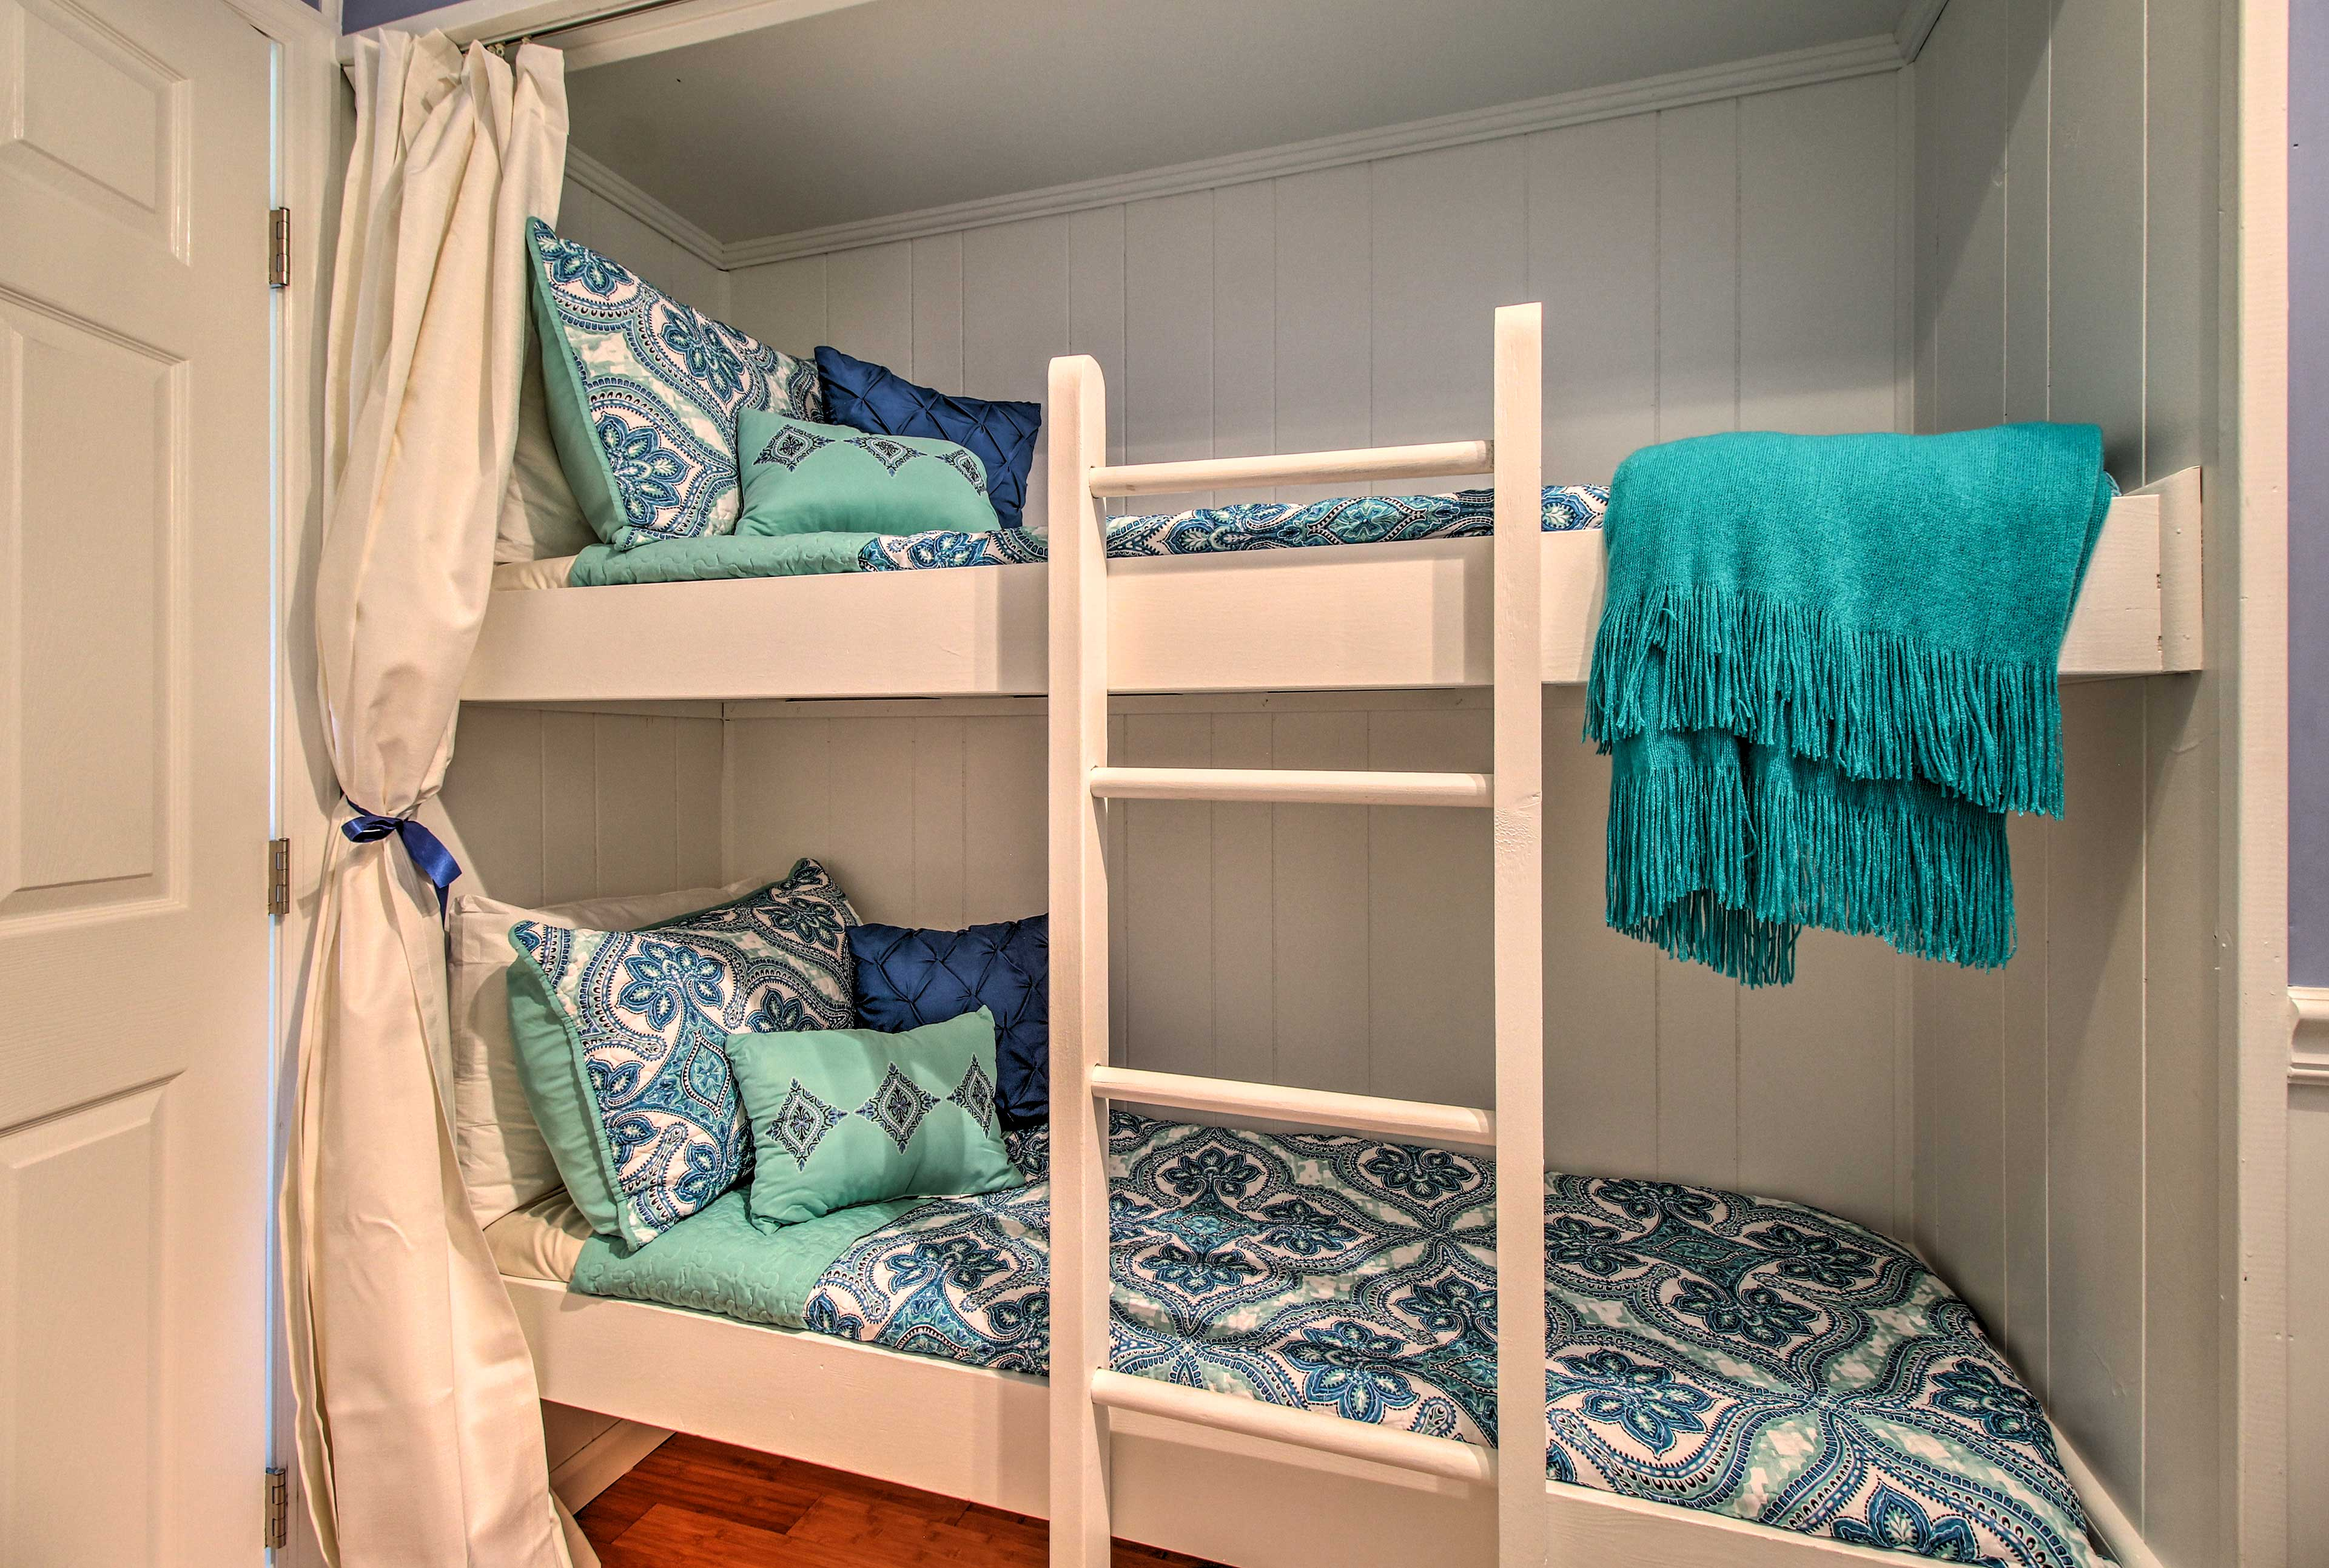 Shut the curtain for more privacy in the bunk beds.